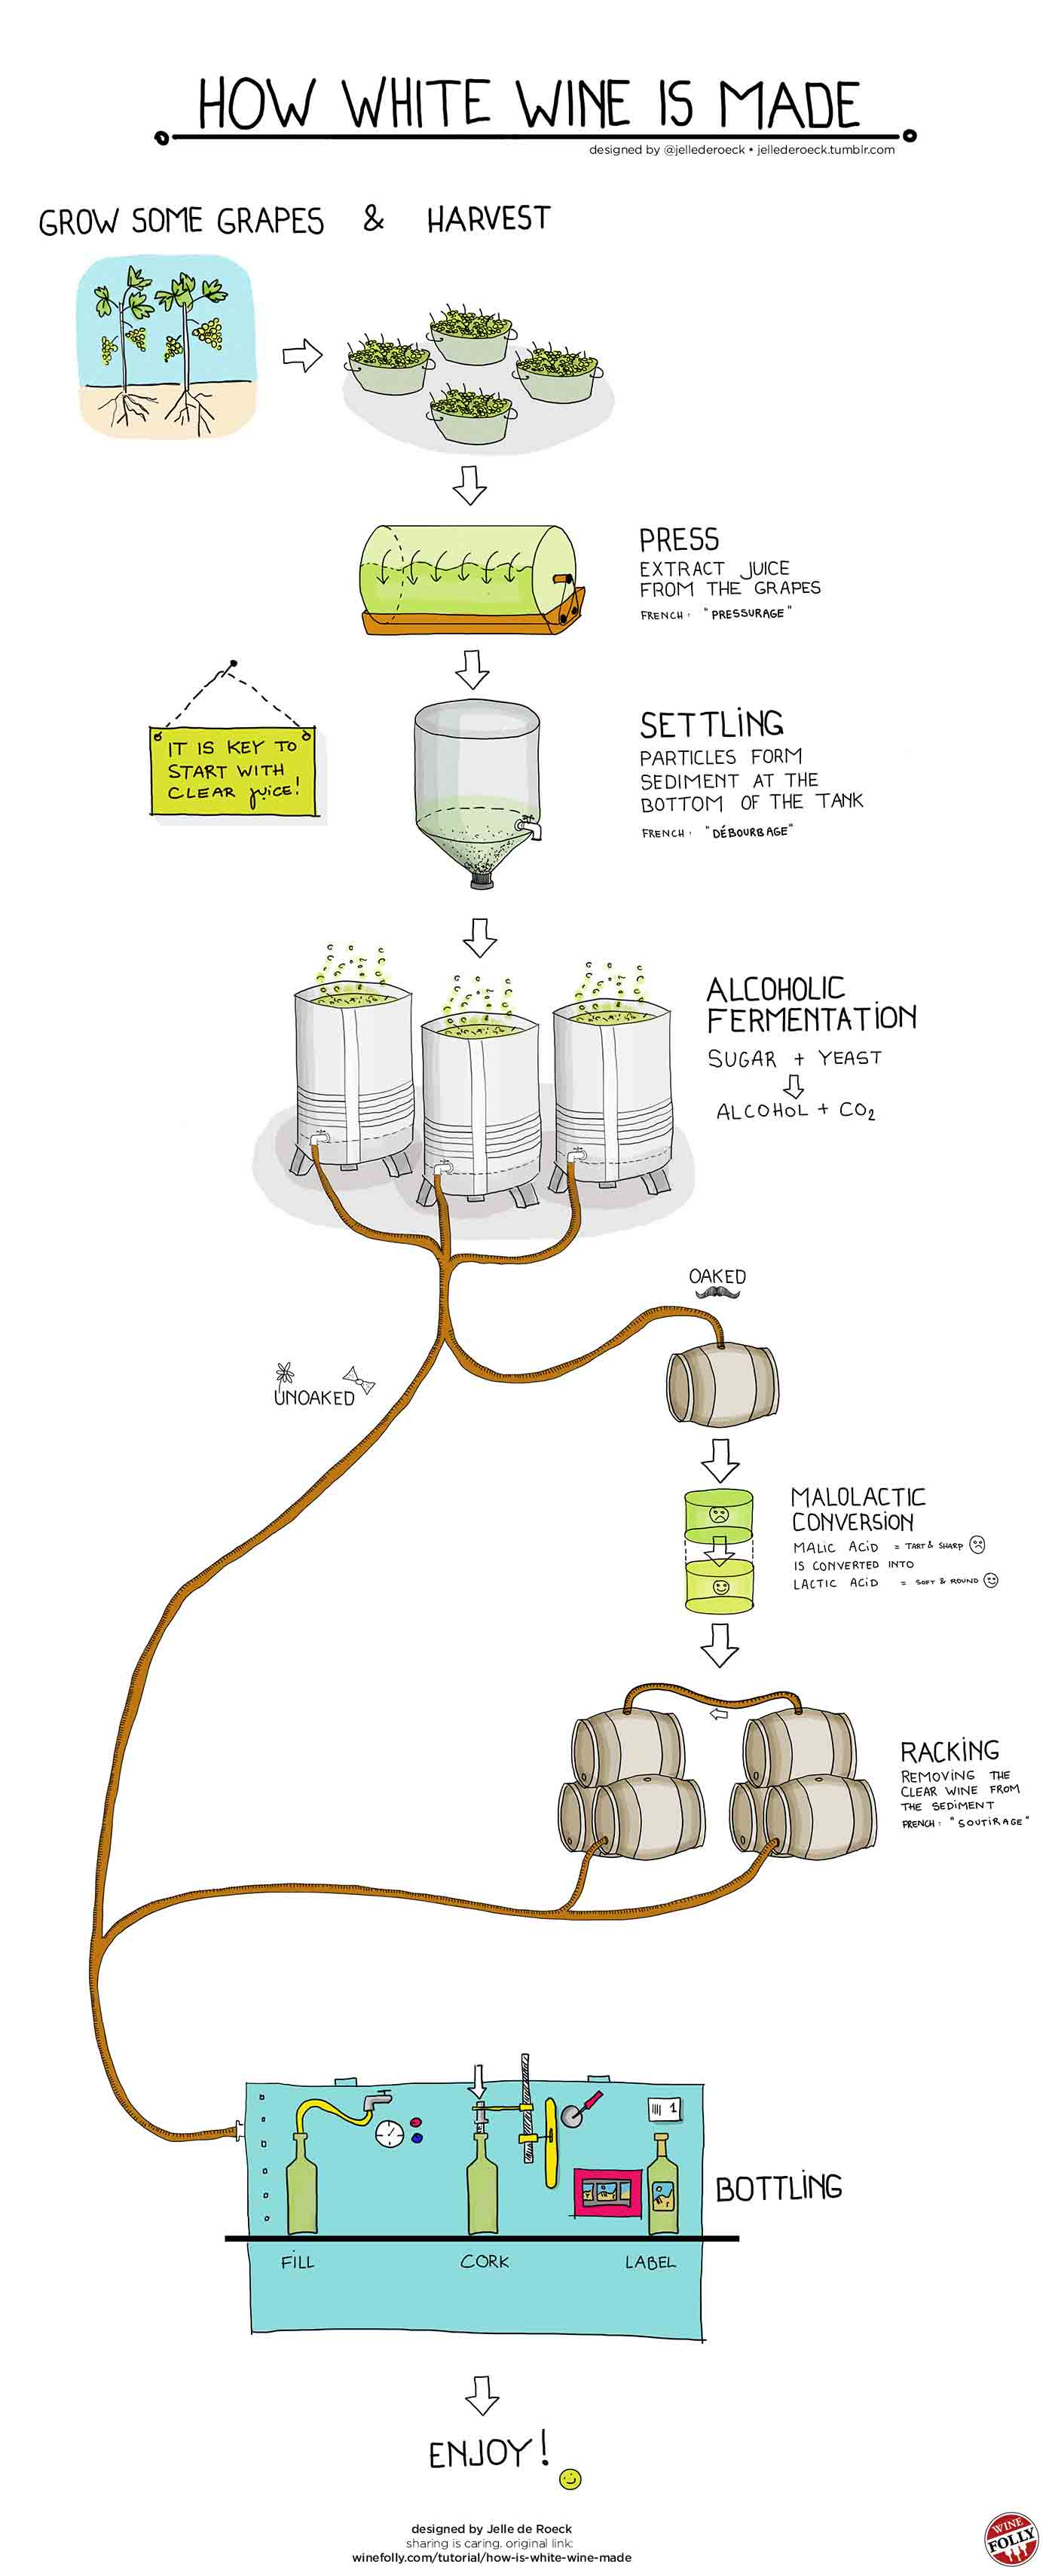 How White Wine is Made